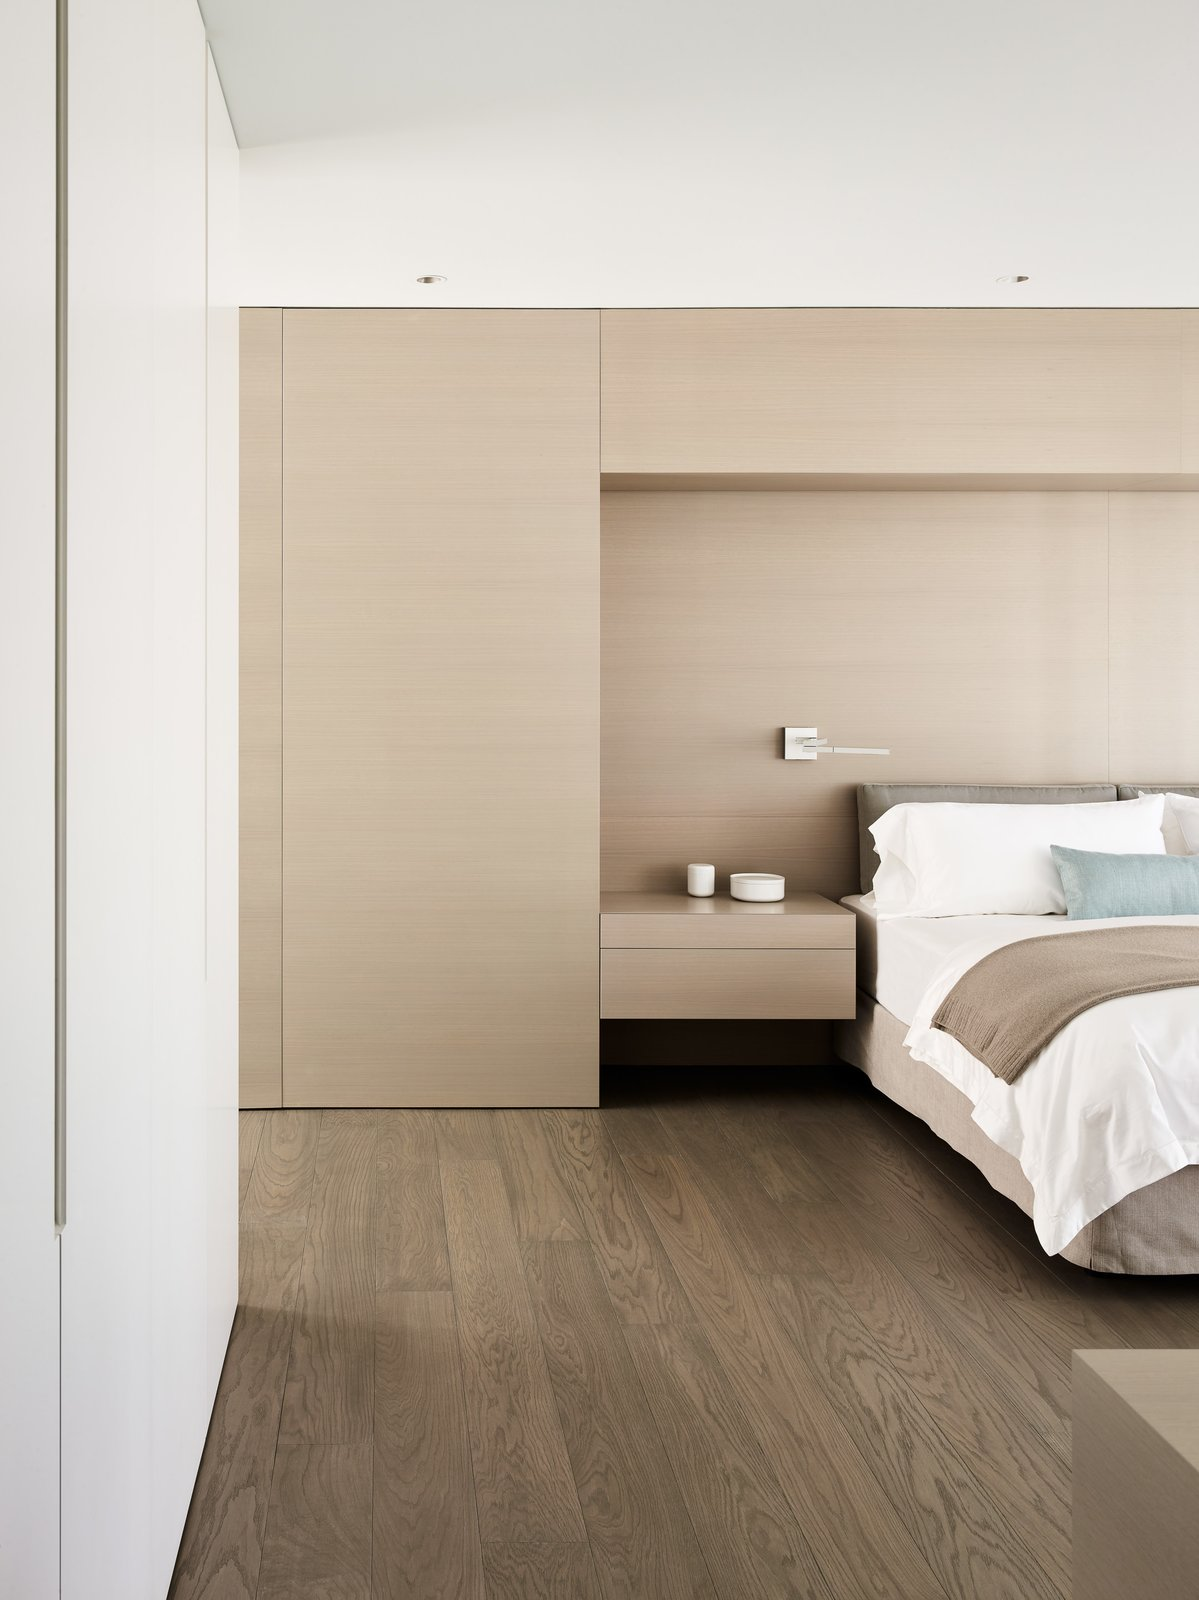 Bedroom, Bed, Night Stands, and Medium Hardwood Floor  Photos from Private Residence 4